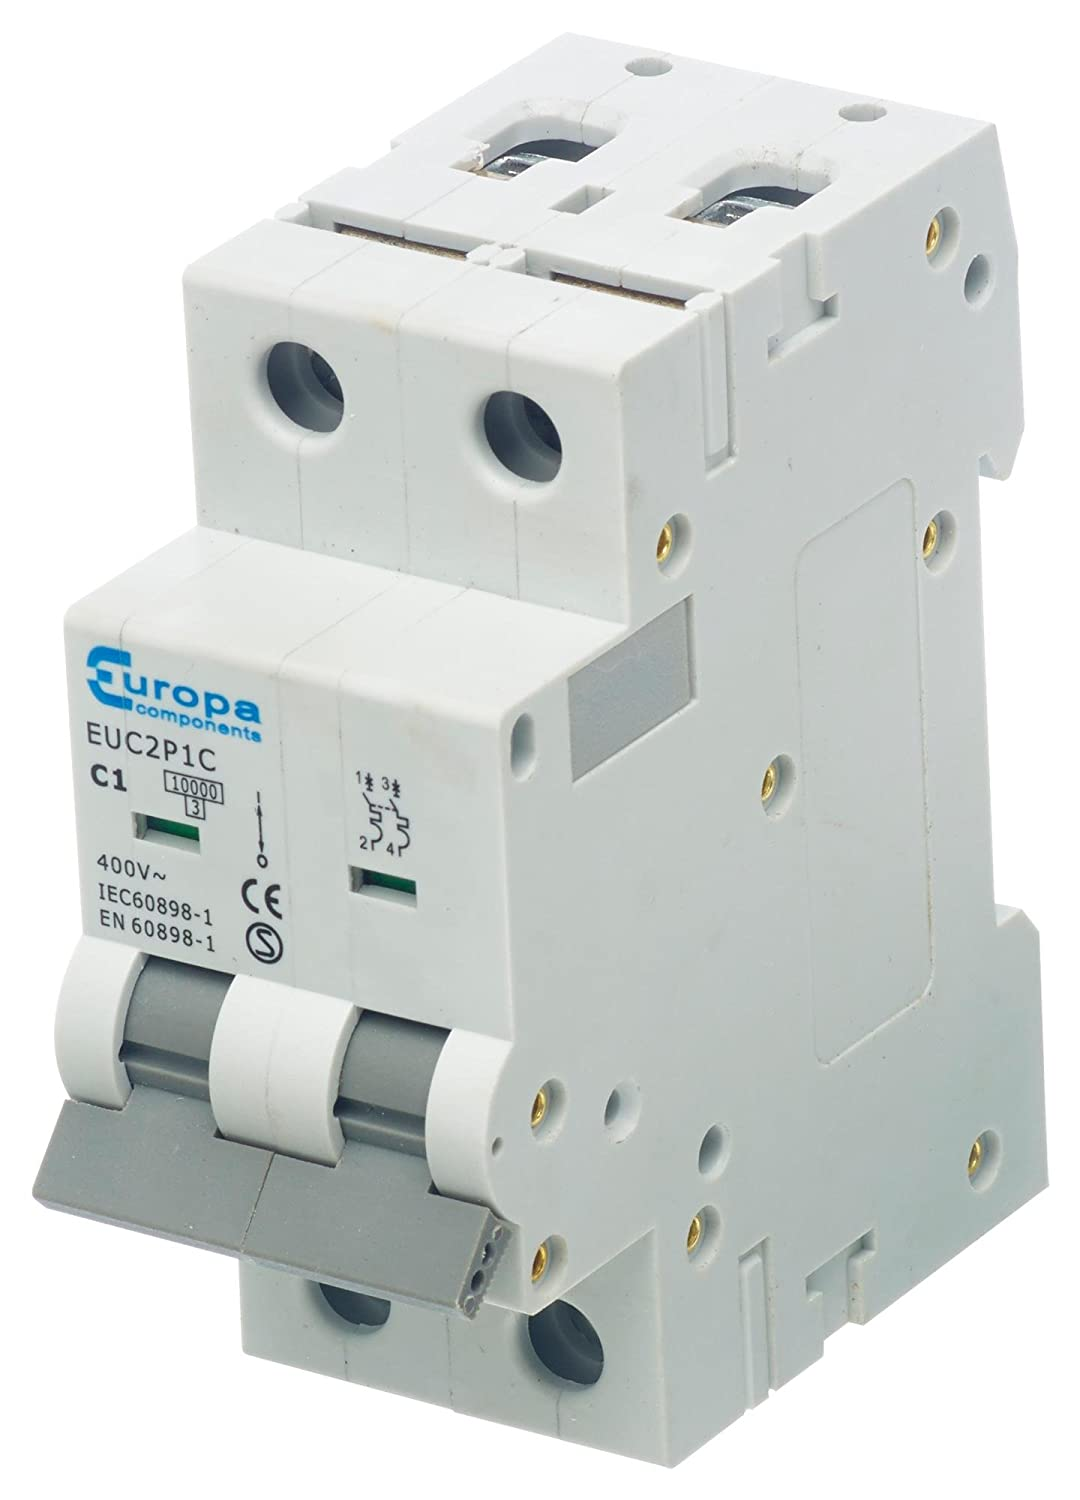 CIRCUIT BREAKER 2 POLE 50A 230VAC////CIRCUIT BREAKER 2 POLE 50A 230VAC Circuit Breaker Mounting DIN Rail Current////EUC2P50C PK OF 1